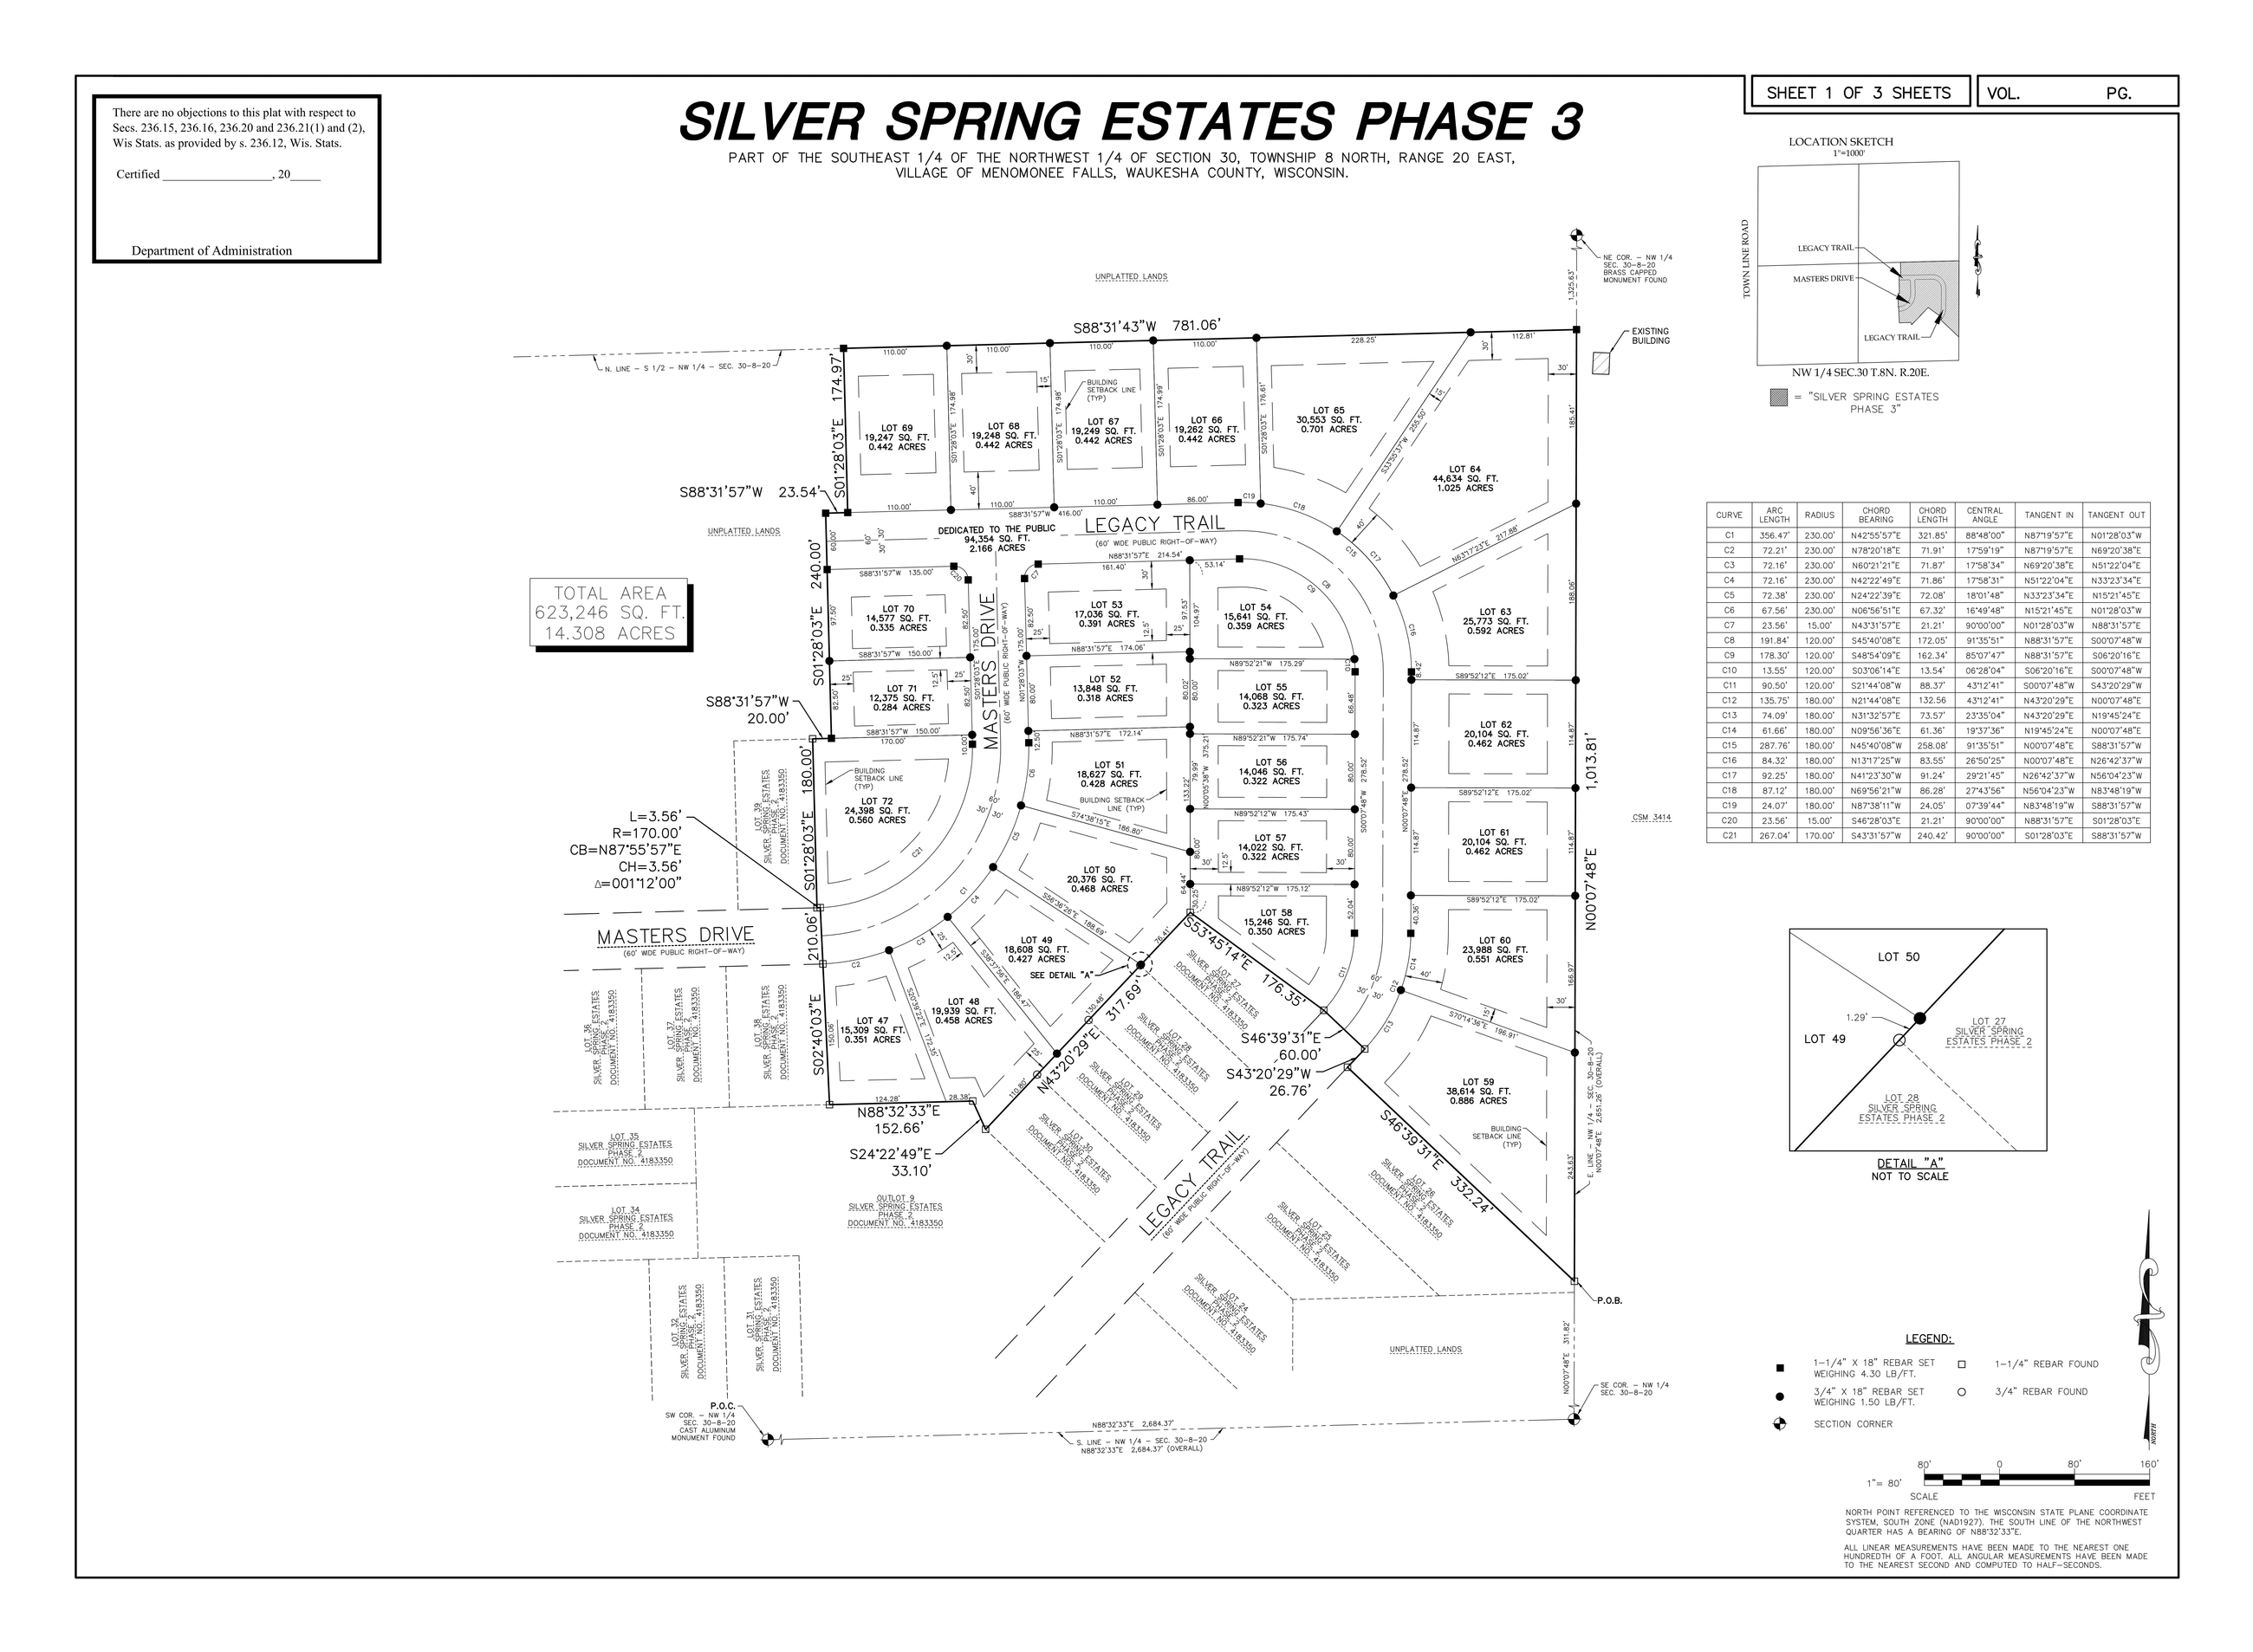 Silver Spring Estates Phase 3 Final Plat.png